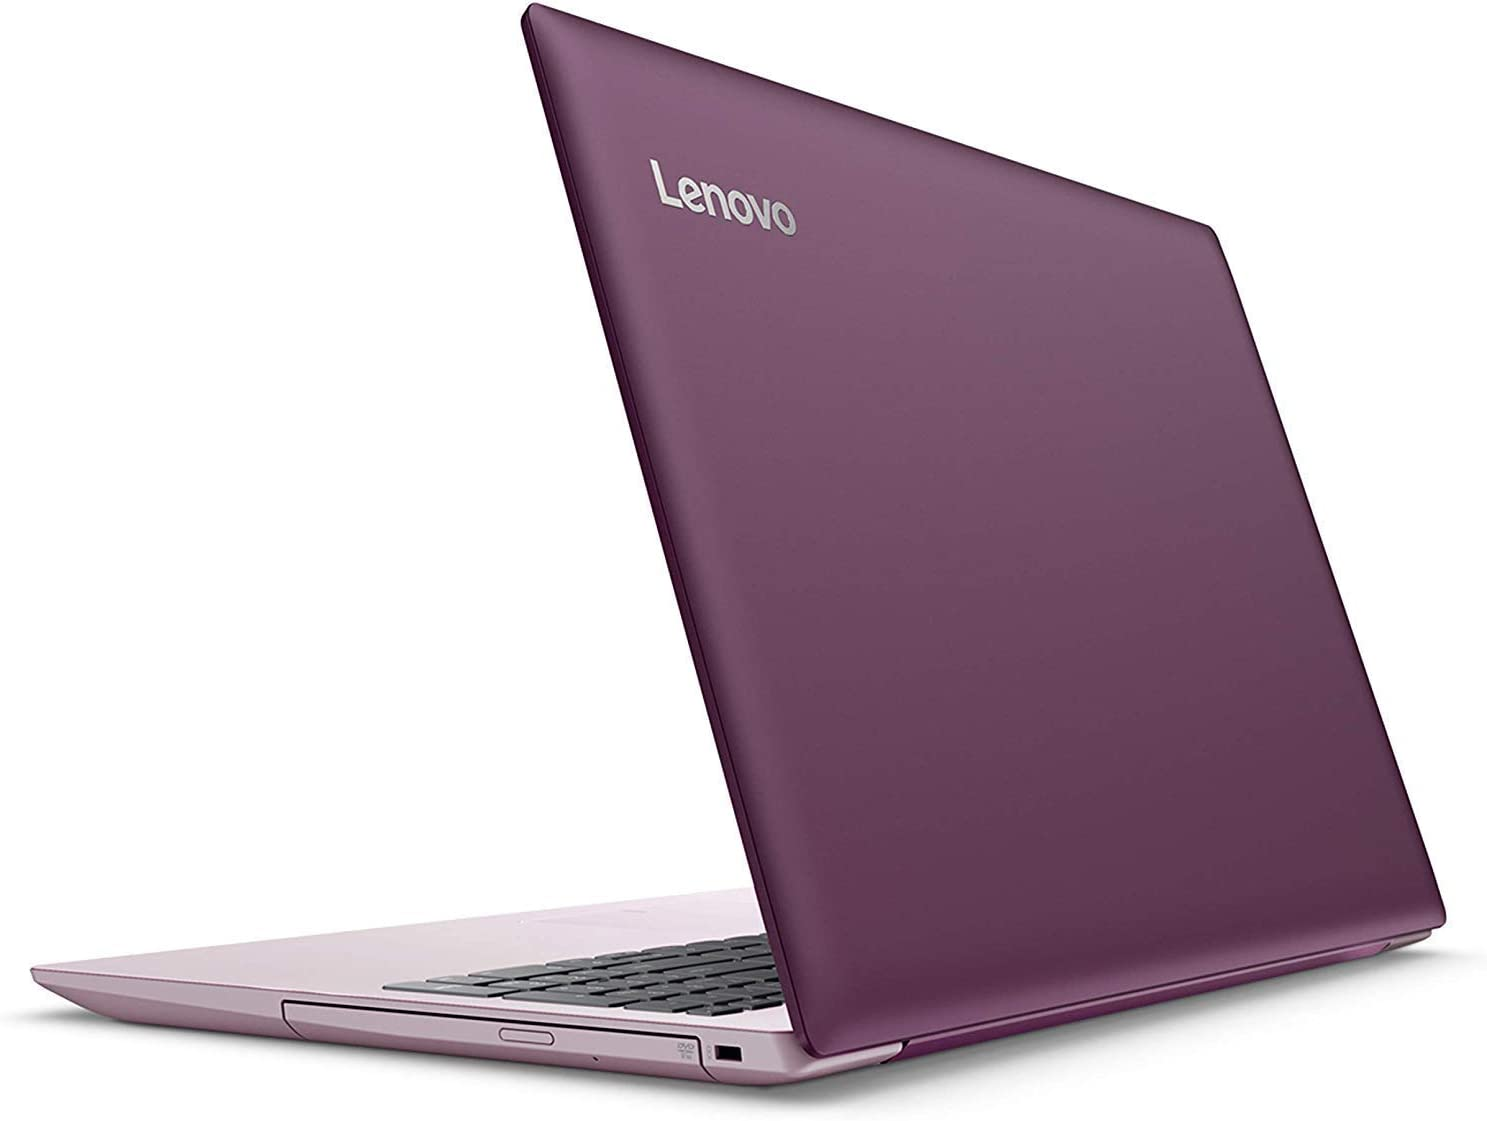 "Lenovo Ideapad 330 15.6"" Anti Glared HD Premium Business Laptop (AMD A9-9425 up to 3.7 GHz, 8GB DDR4 Memory, 256GB SSD, AMD Radeon R5 Graphic, DVD-RW, HDMI, Windows 10 Home) - Purple (Renewed)"